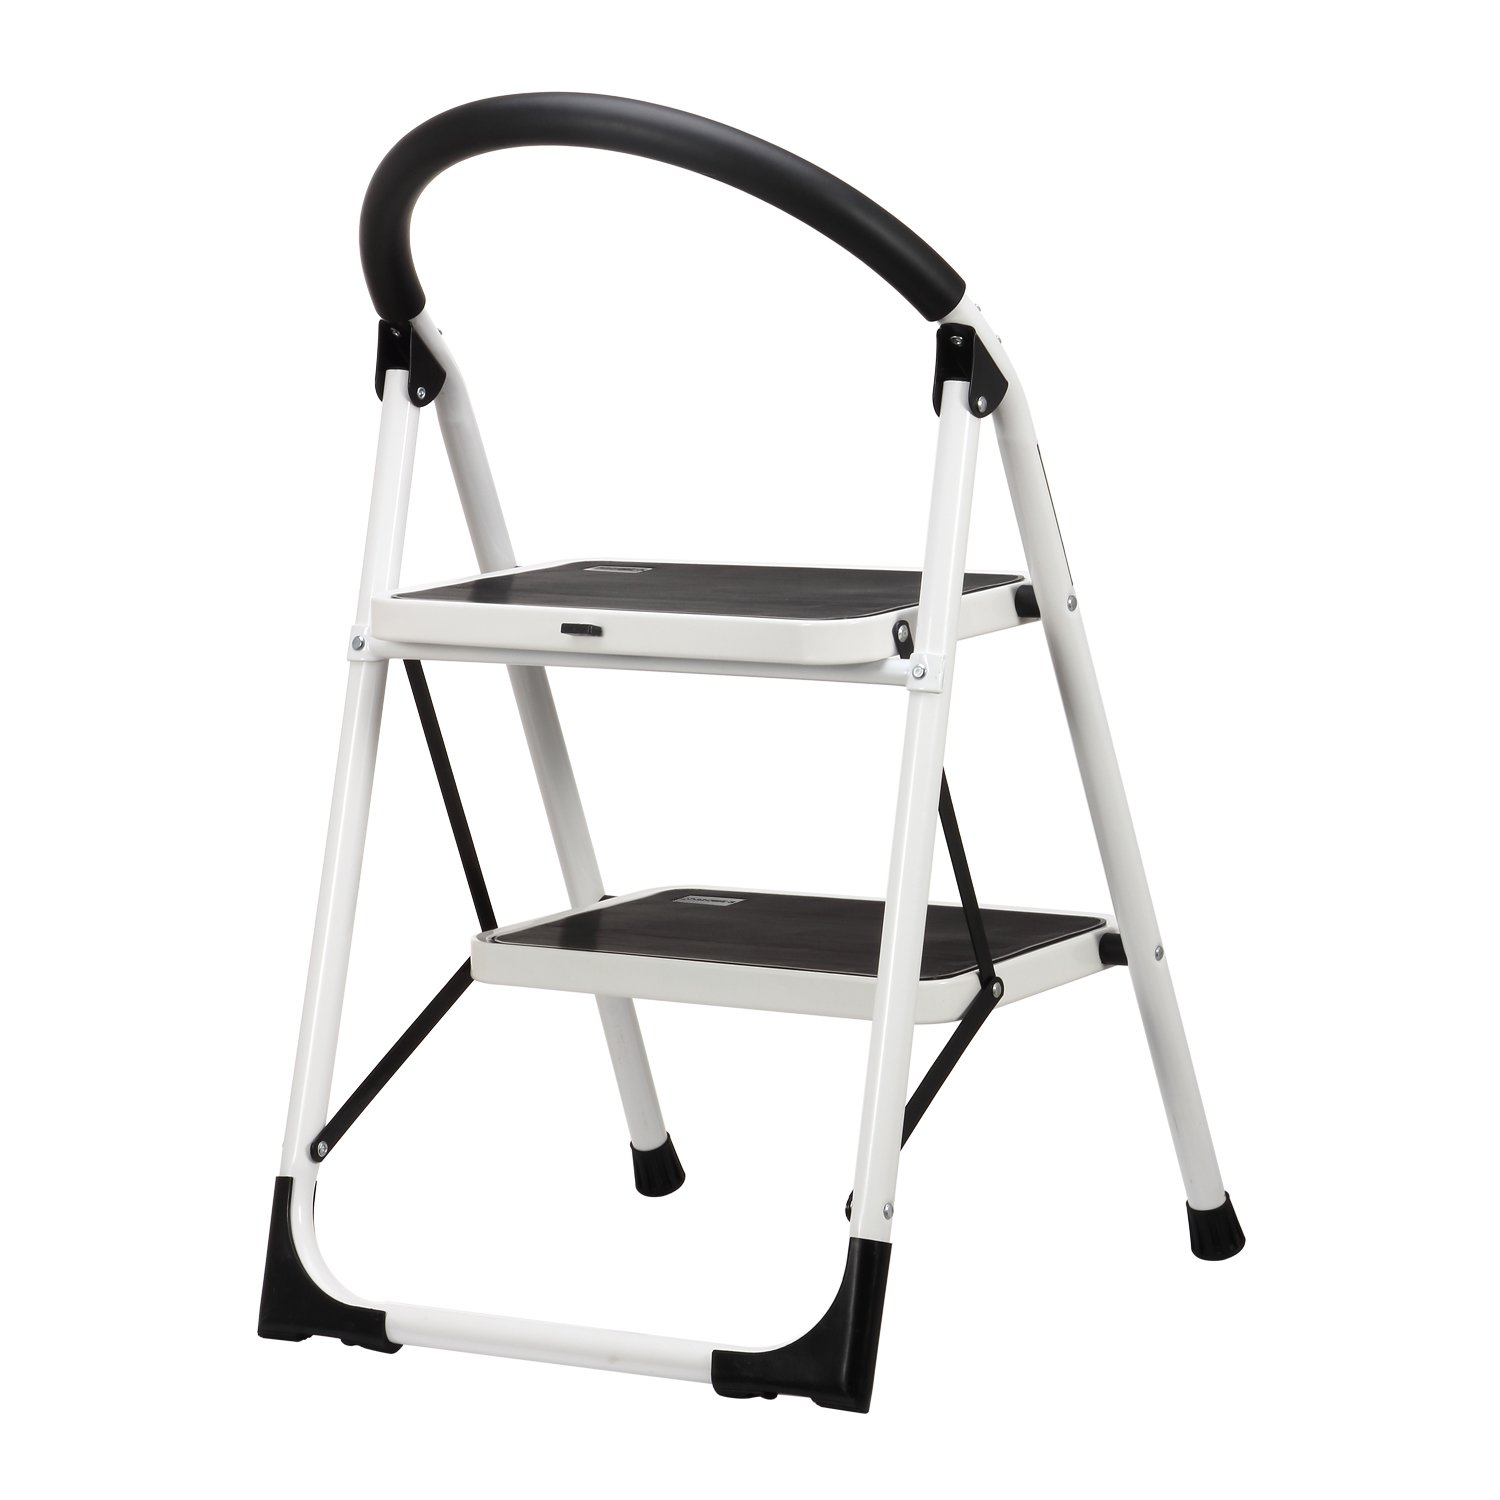 Ollieroo Step Stool EN131 Steel Folding 2 Step Ladder with Comfy Grip Handle Anti-slip Step Mon-marring Feet 330-pound Capacity White by Ollieroo (Image #1)